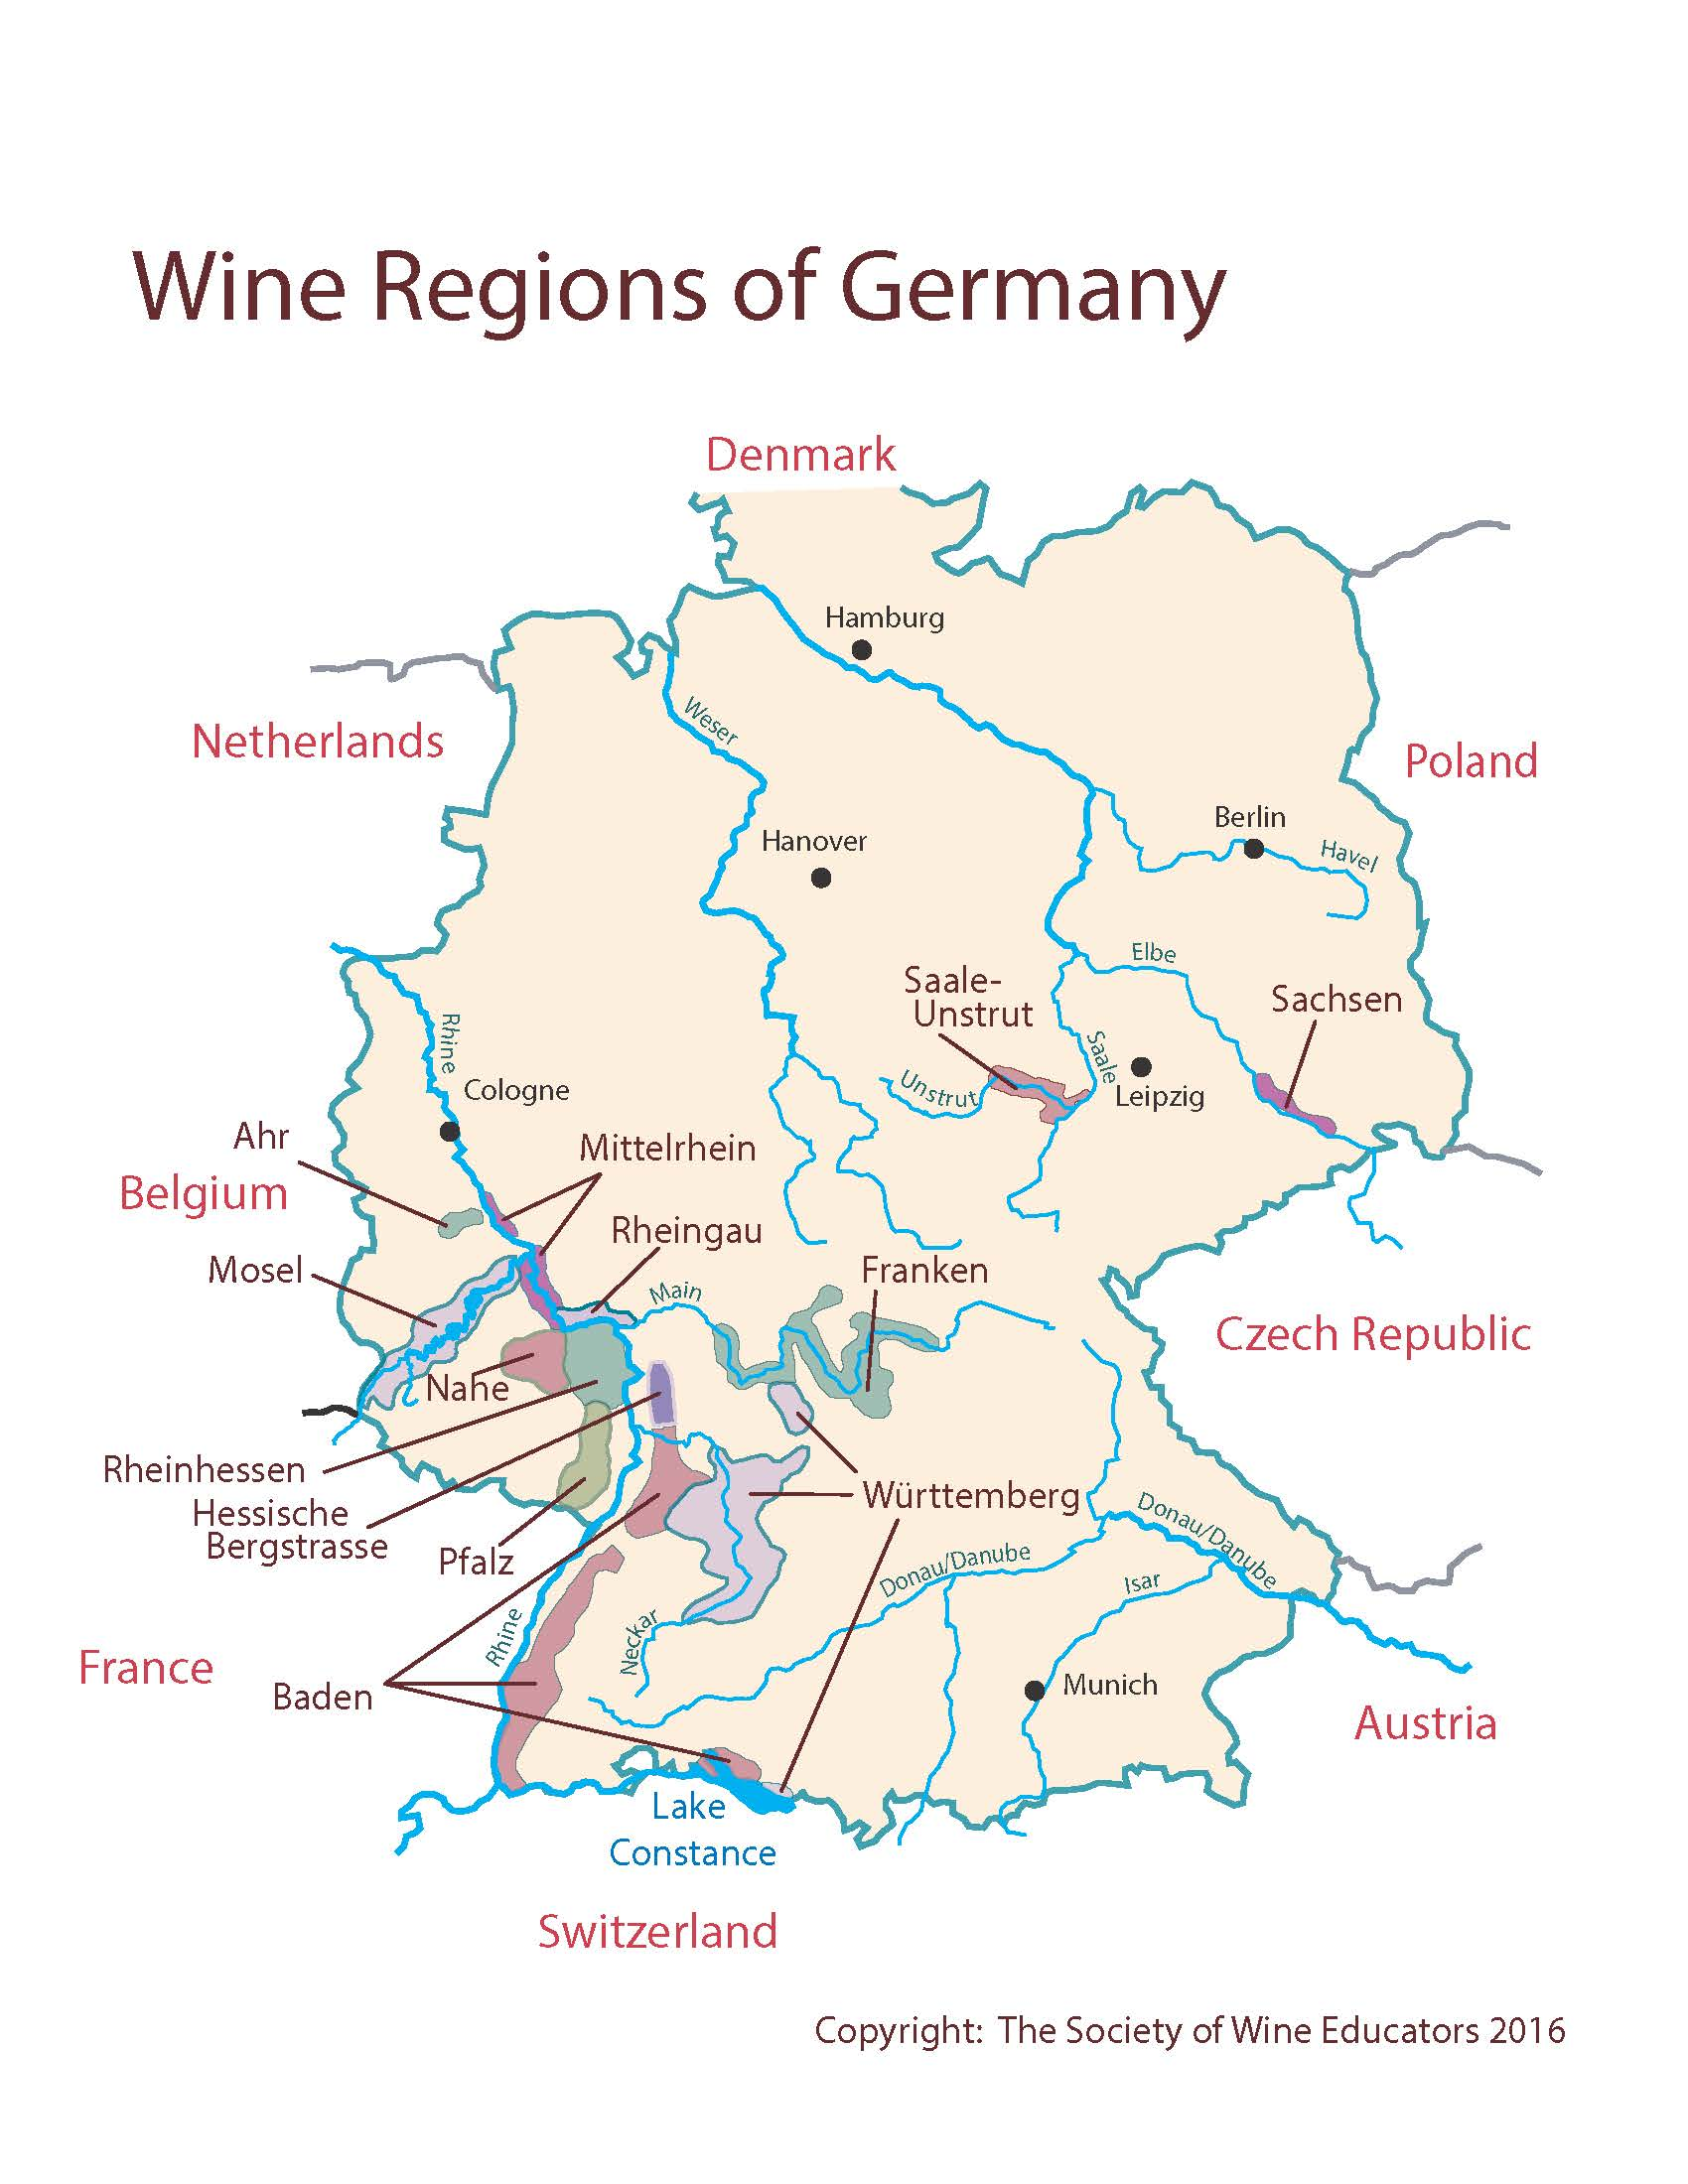 Map Of Austria And Germany Map Of Essex County Nj Map Of North Florida - Germany map 2017